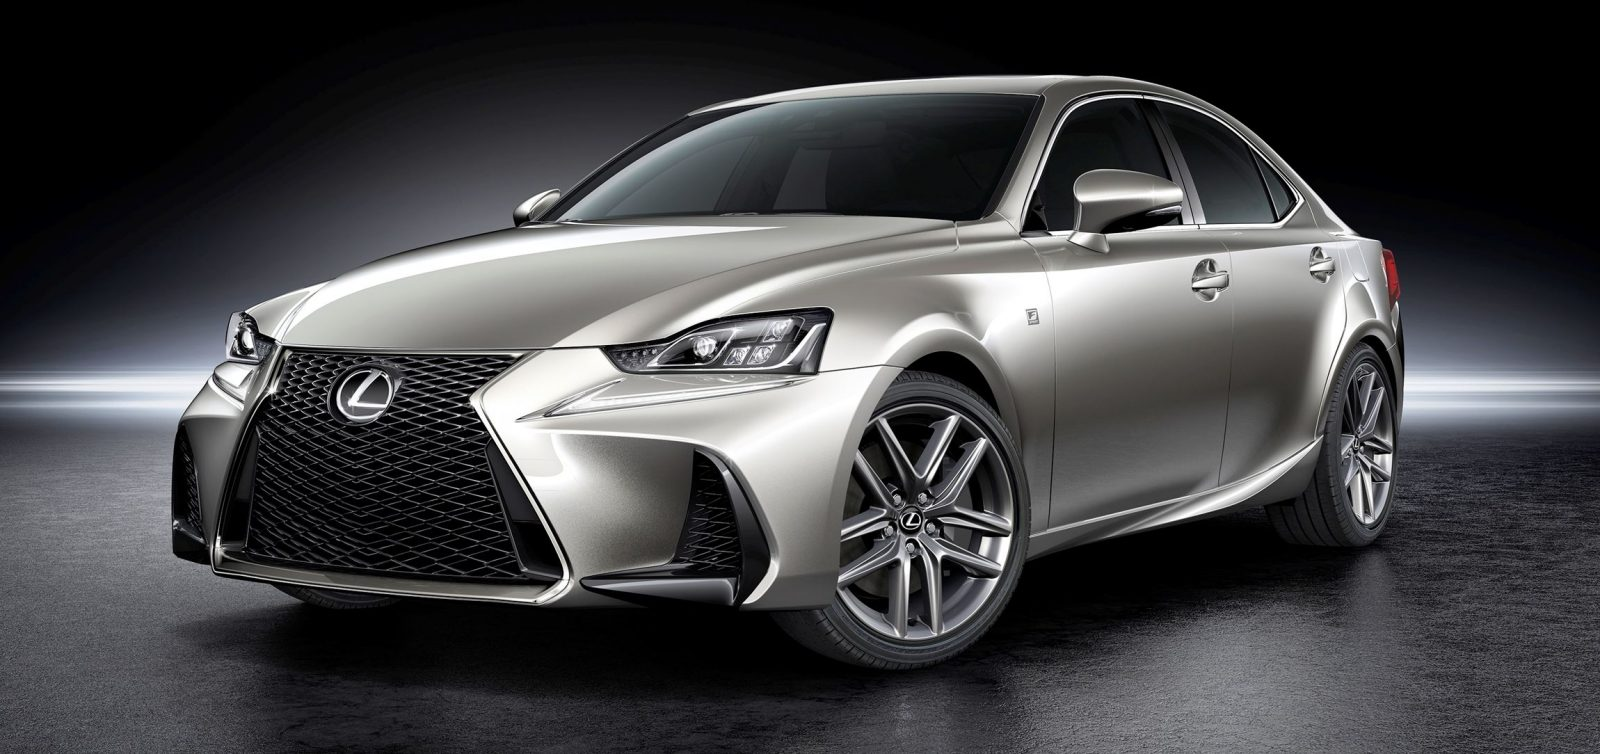 2017 lexus is preview new noses wilder f sport upgrades and quicker sprint pace. Black Bedroom Furniture Sets. Home Design Ideas